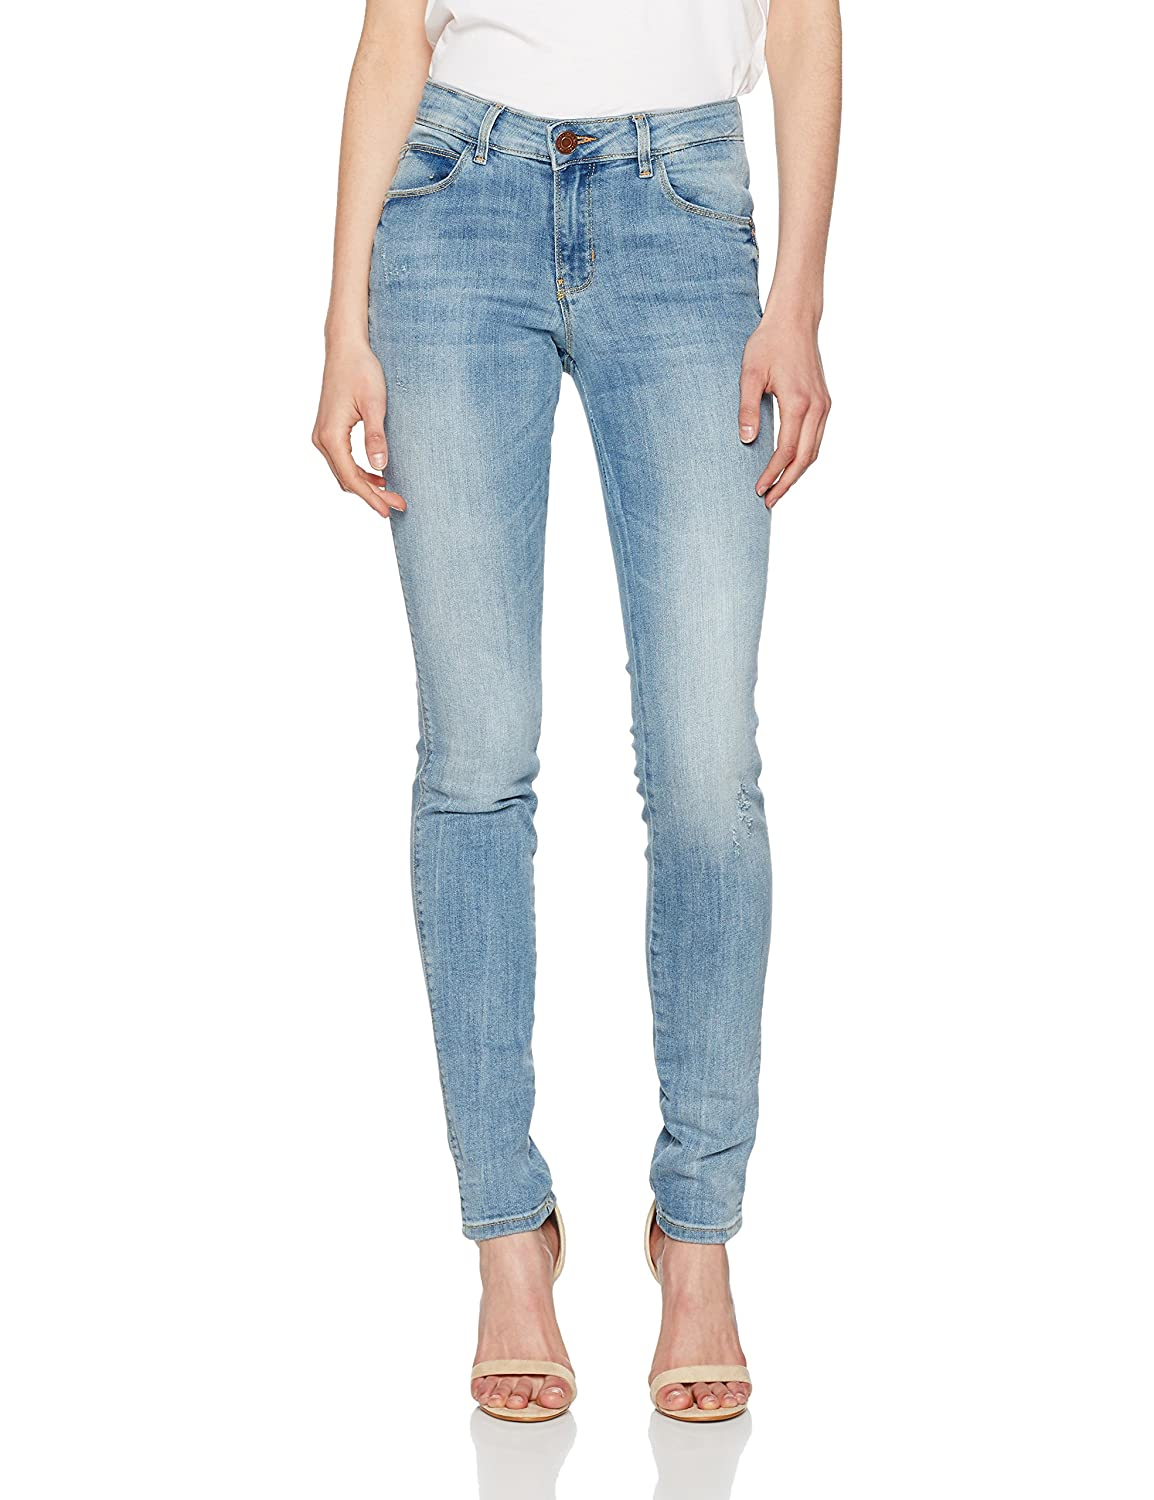 Guess Jeans a Gamba Dritta Donna